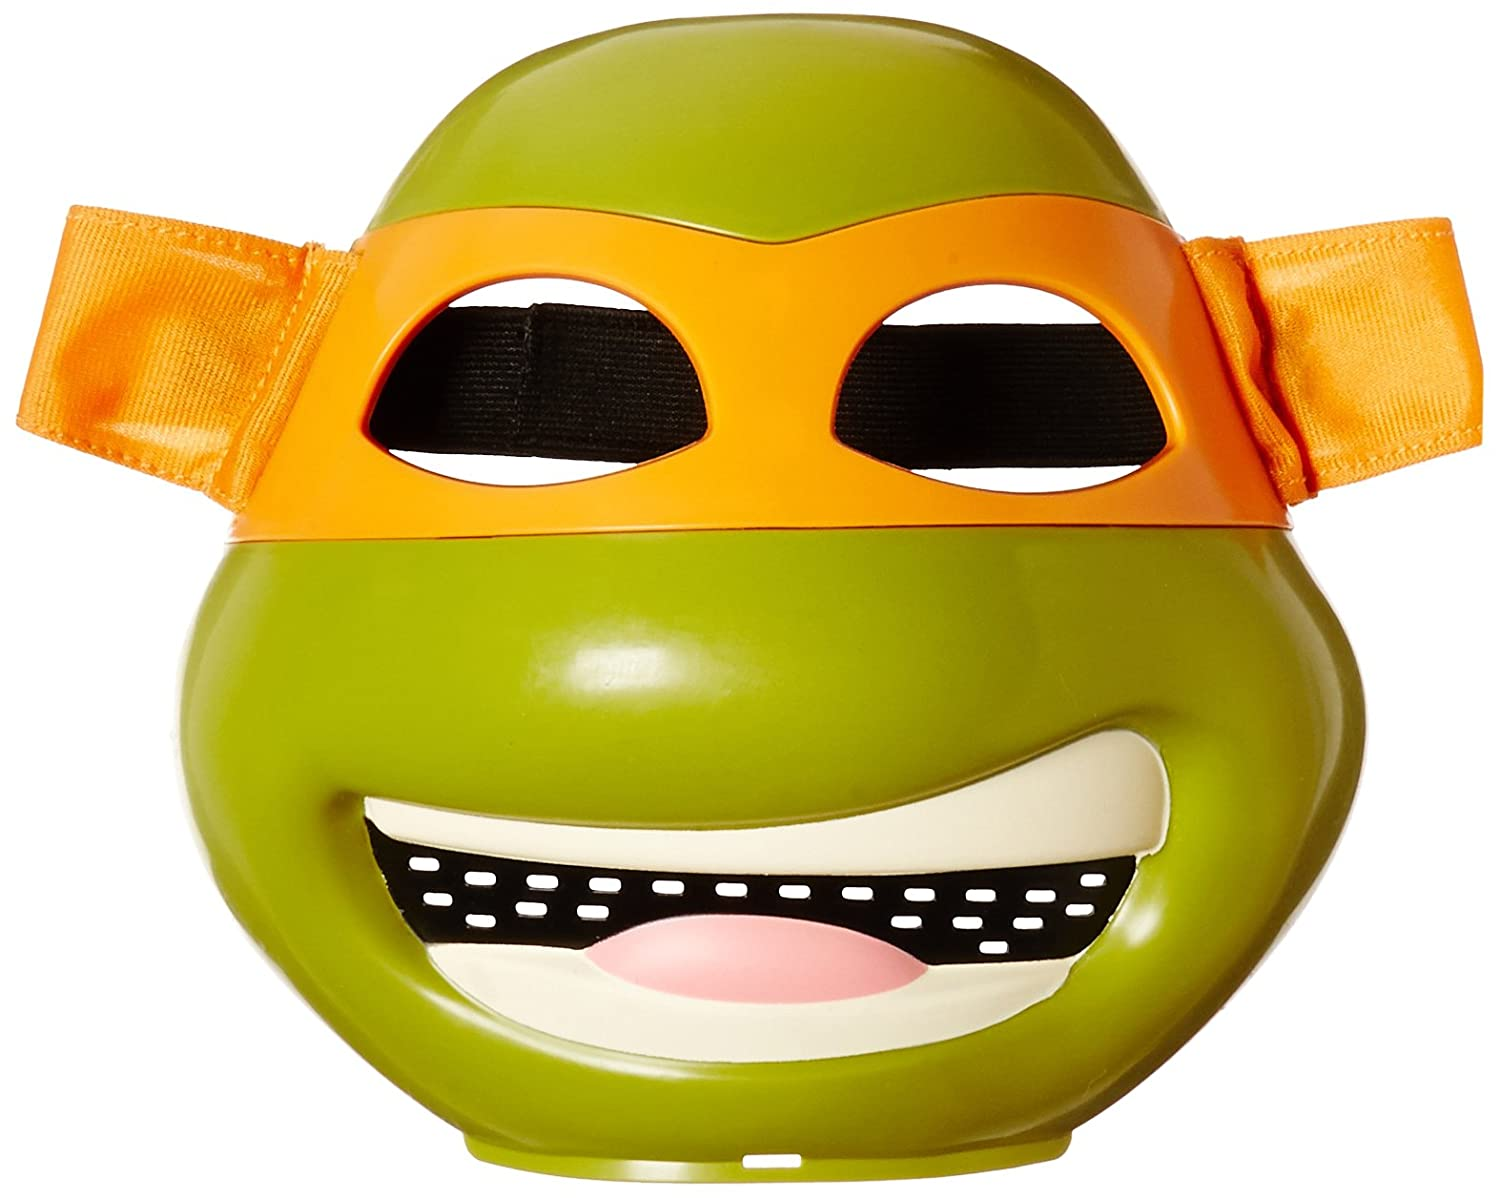 Teenage Mutant Ninja Turtles Nickelodeon Michelangelo Deluxe Mask